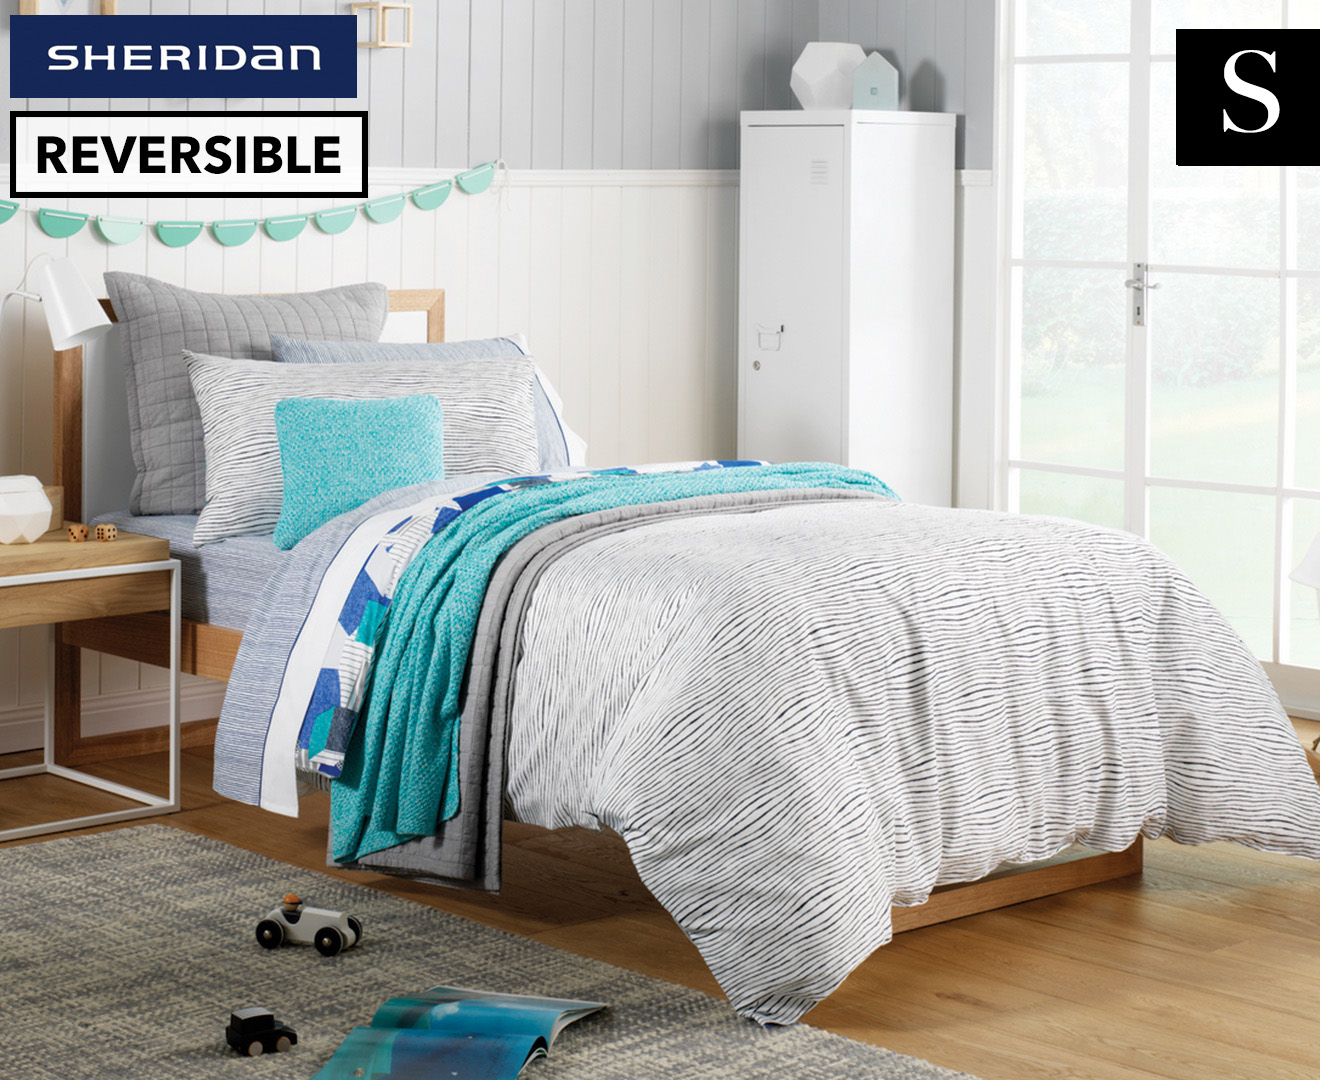 Sheridan Altair Reversible Single Bed Quilt Cover Set - Electric Blue